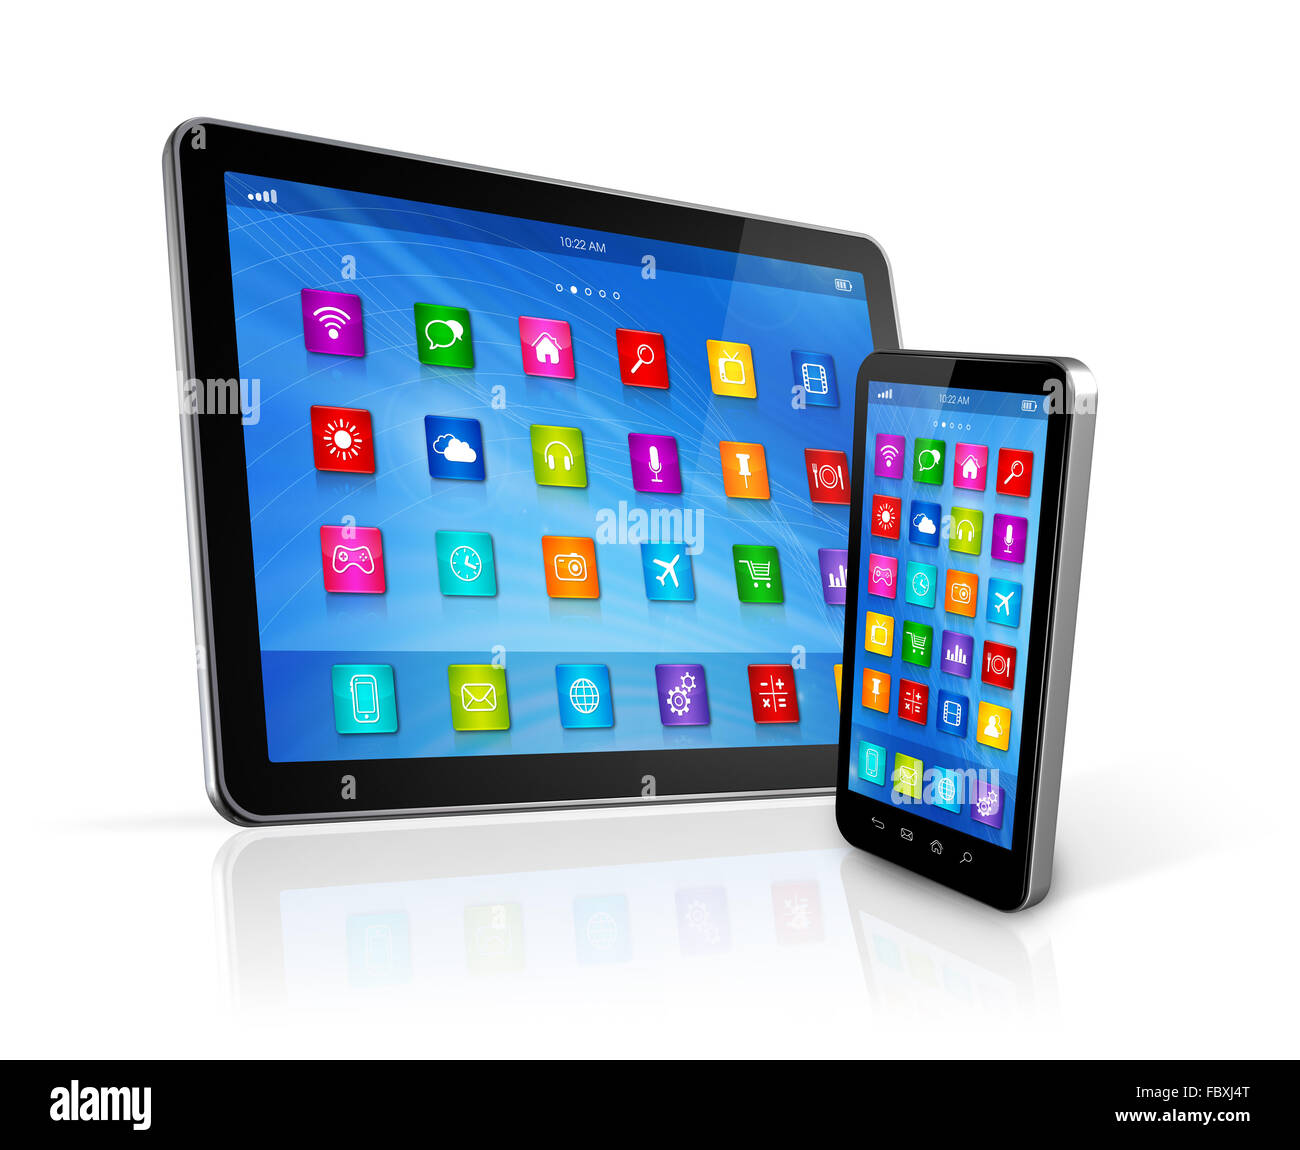 Smartphone and Digital Tablet Computer - Stock Image